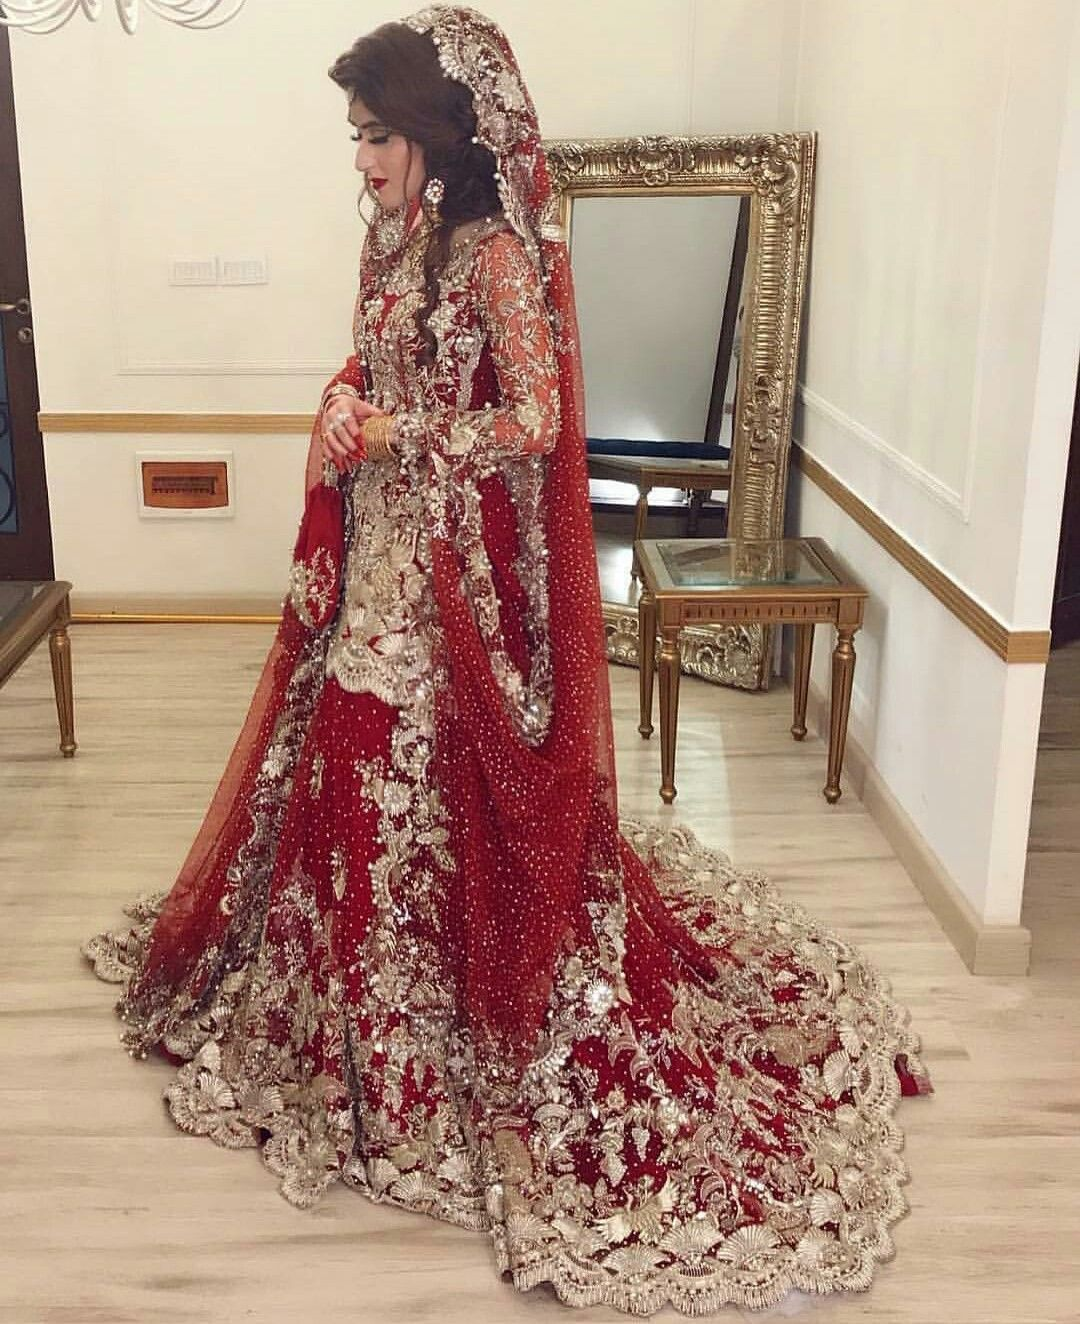 Bridal lahanga 😊😊😊😊😍😍😍😍  Indian bridal dress, Red bridal